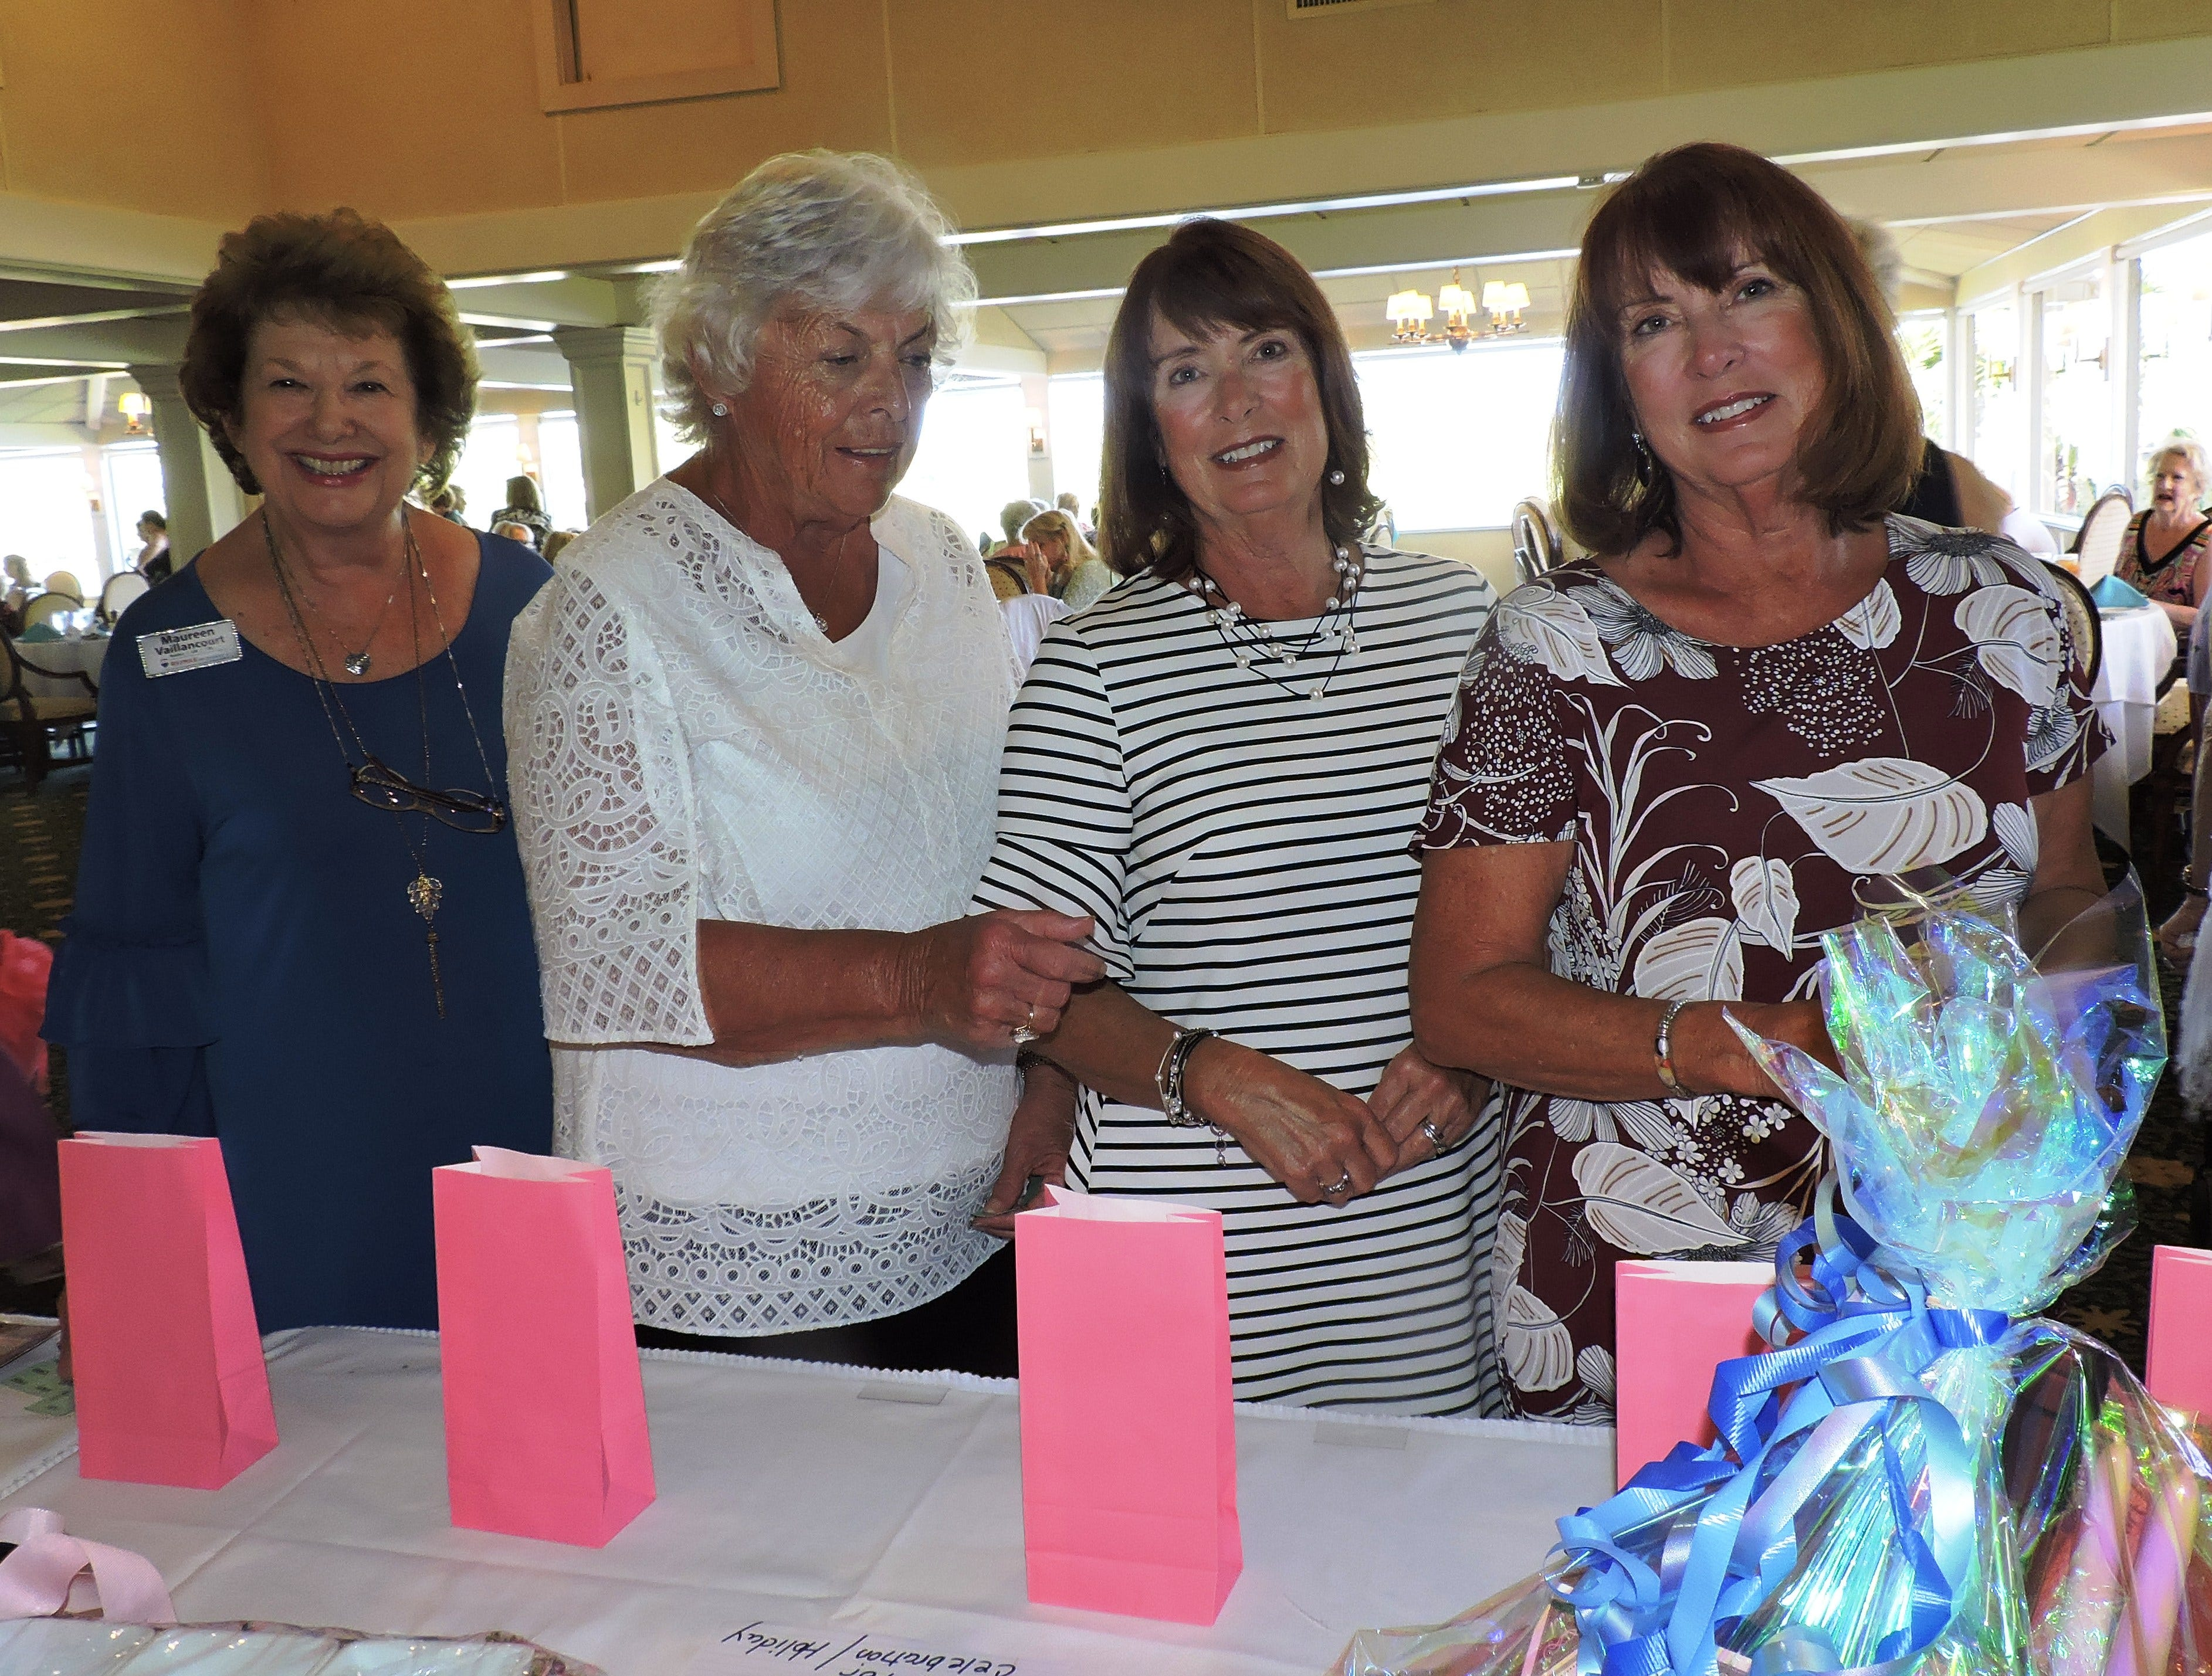 Maureen Vaillancourt, left, Donna Grillo, Jane Maximovich and Judy FaLave at the Woman's Club of Stuart's annual Food, Friends and Fashion Show.